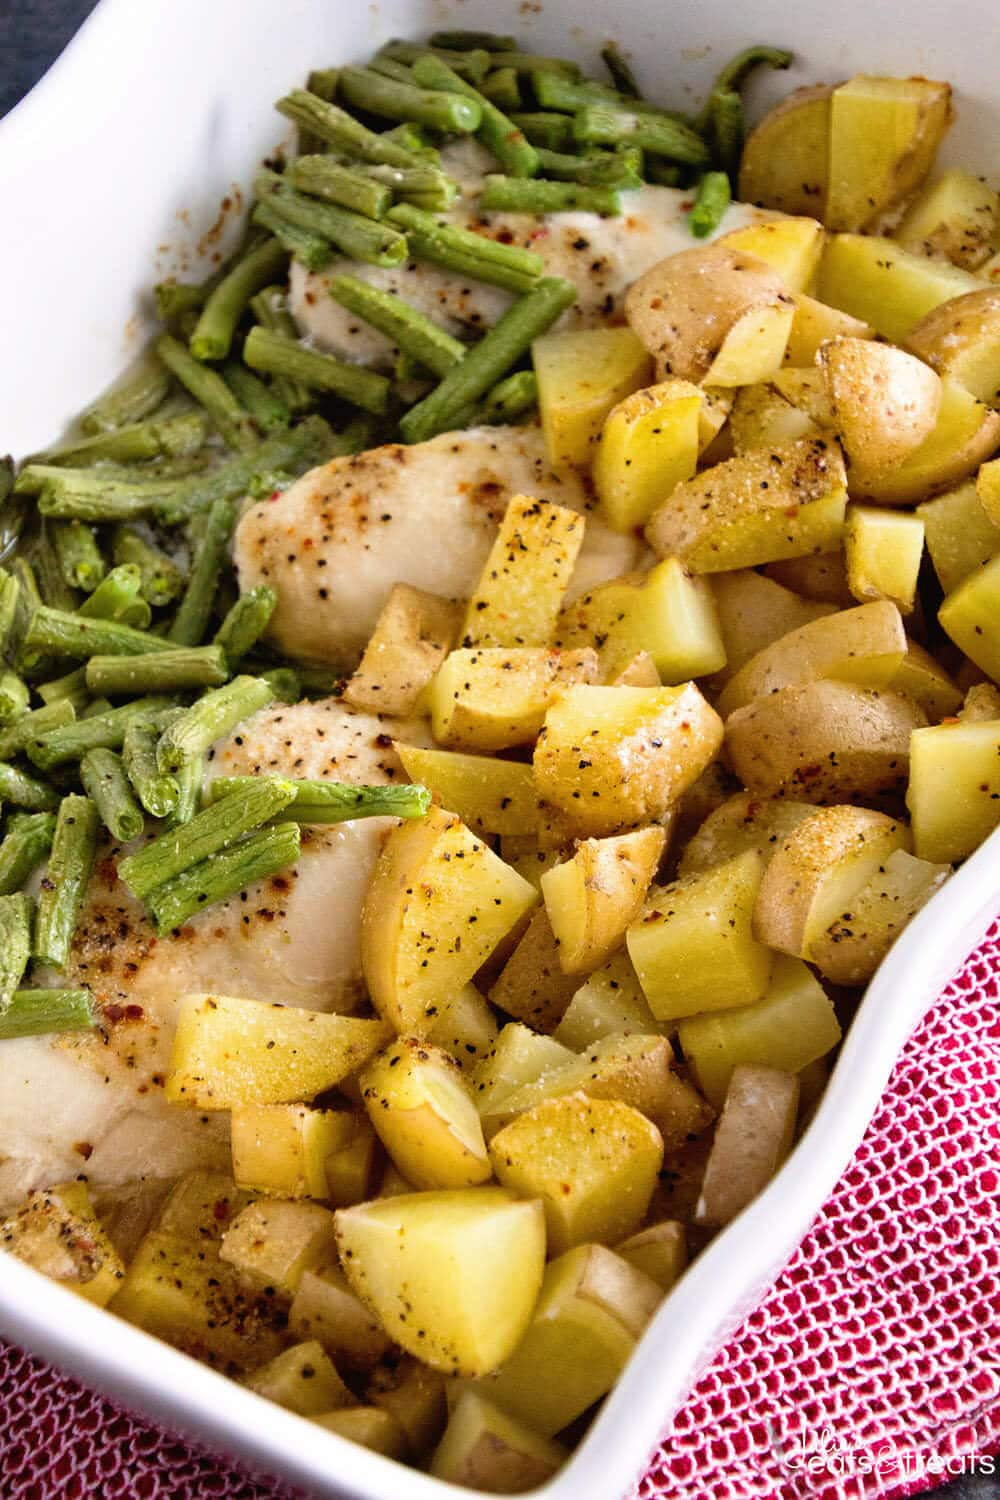 Beans Greens Potatoes  Easy Meal Plan Sunday Week 102 365 Days of Baking and More